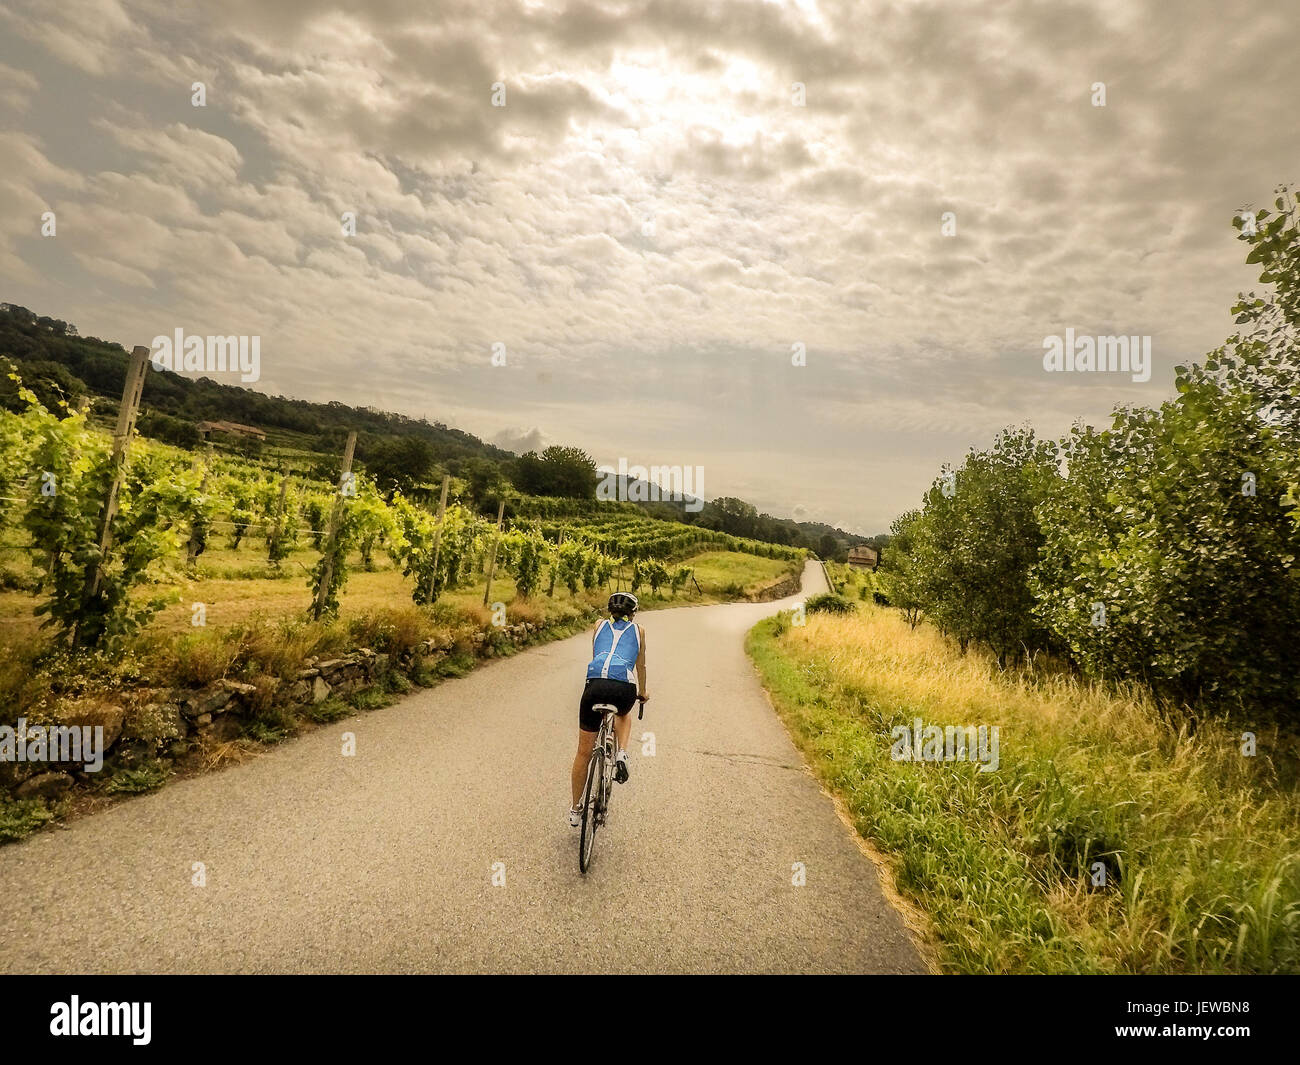 A woman cycling in Italy on a contry road wearing a blue sleeveless cycle jersey travel through the quiet italian - Stock Image